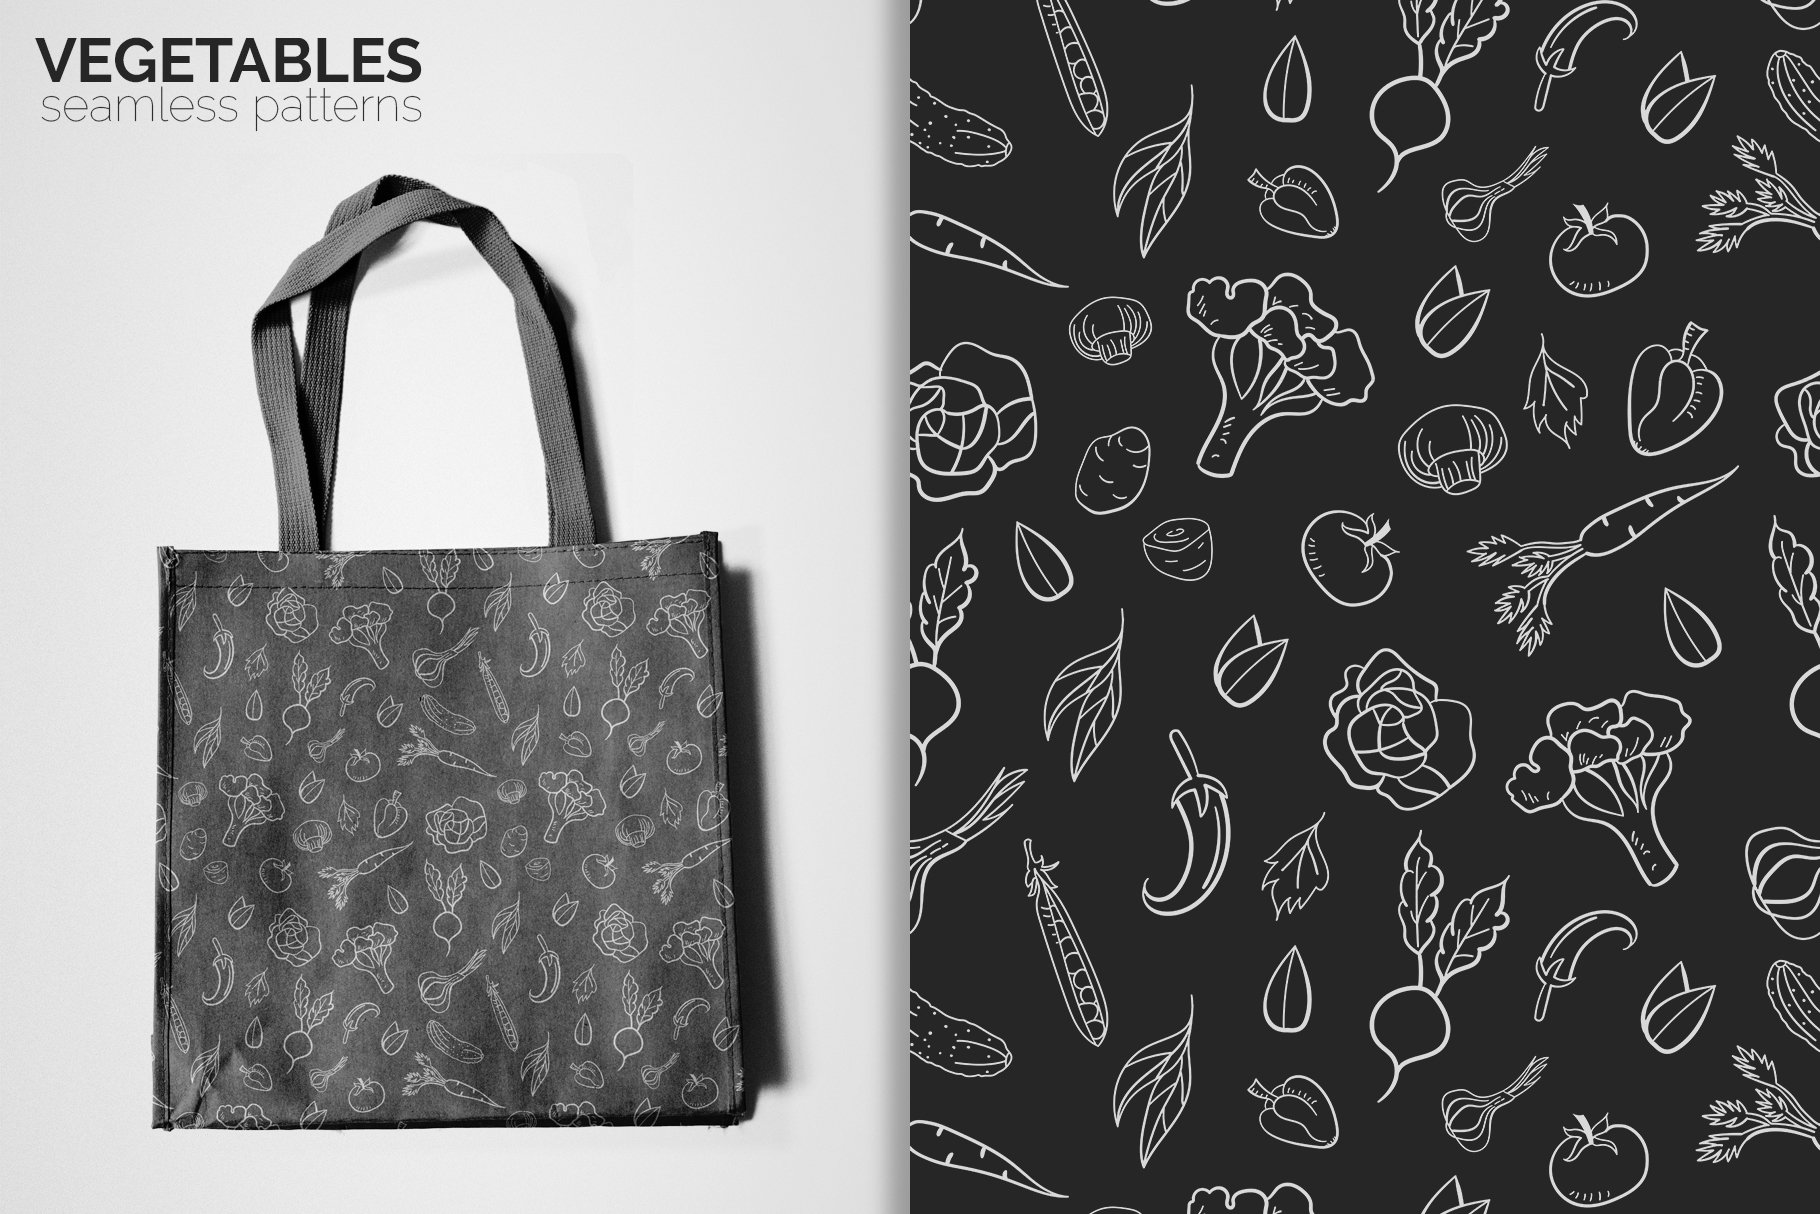 Vegetables Seamless Patterns example image 5